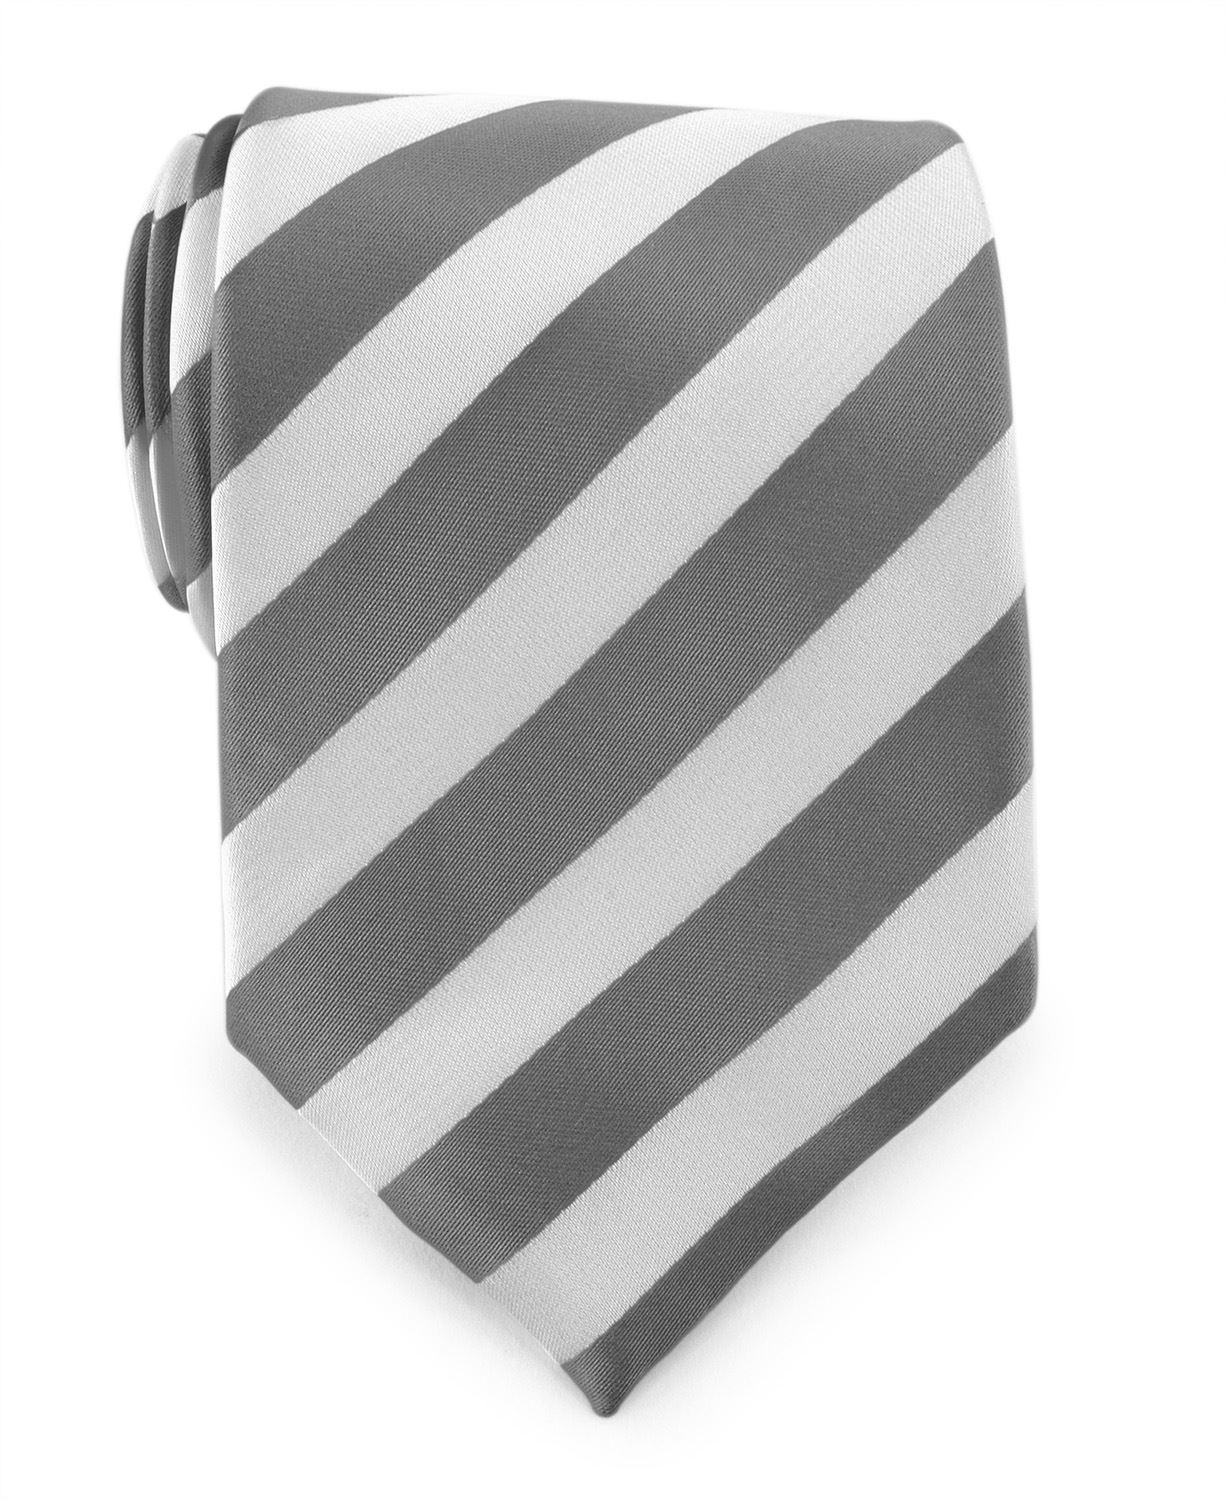 Uomo Vennetto Men's Charcoal and White College Stripe Woven Polyester Tie and Handkerchief Set